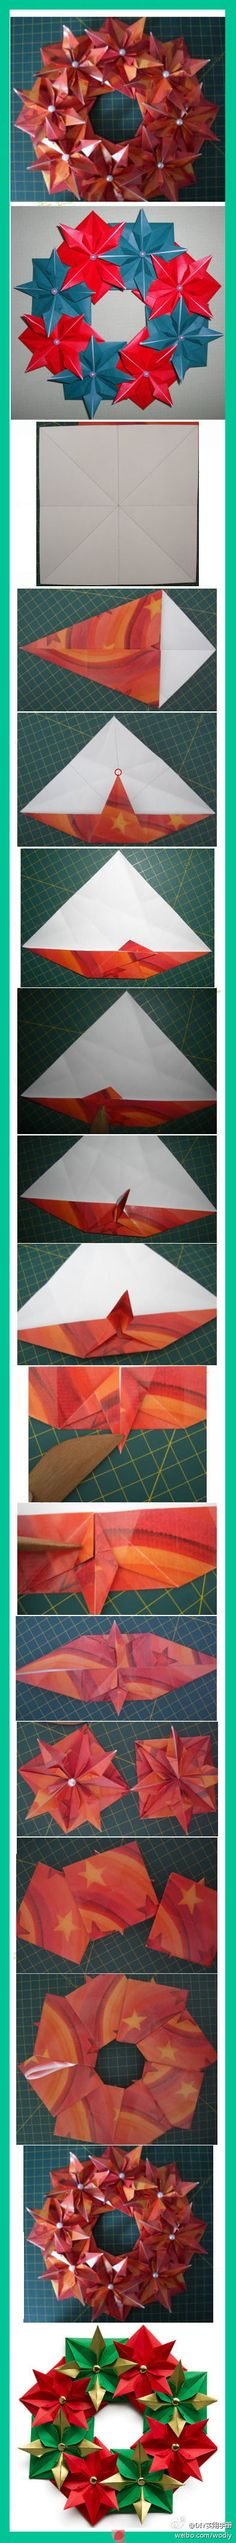 Origami Flowers Decoration Diy Crafts 57 Ideas For 2019 Origami Wreath, Paper Crafts Origami, Origami Stars, Diy Origami, Origami Tutorial, Diy Paper, Oragami, Wreath Tutorial, Christmas Origami